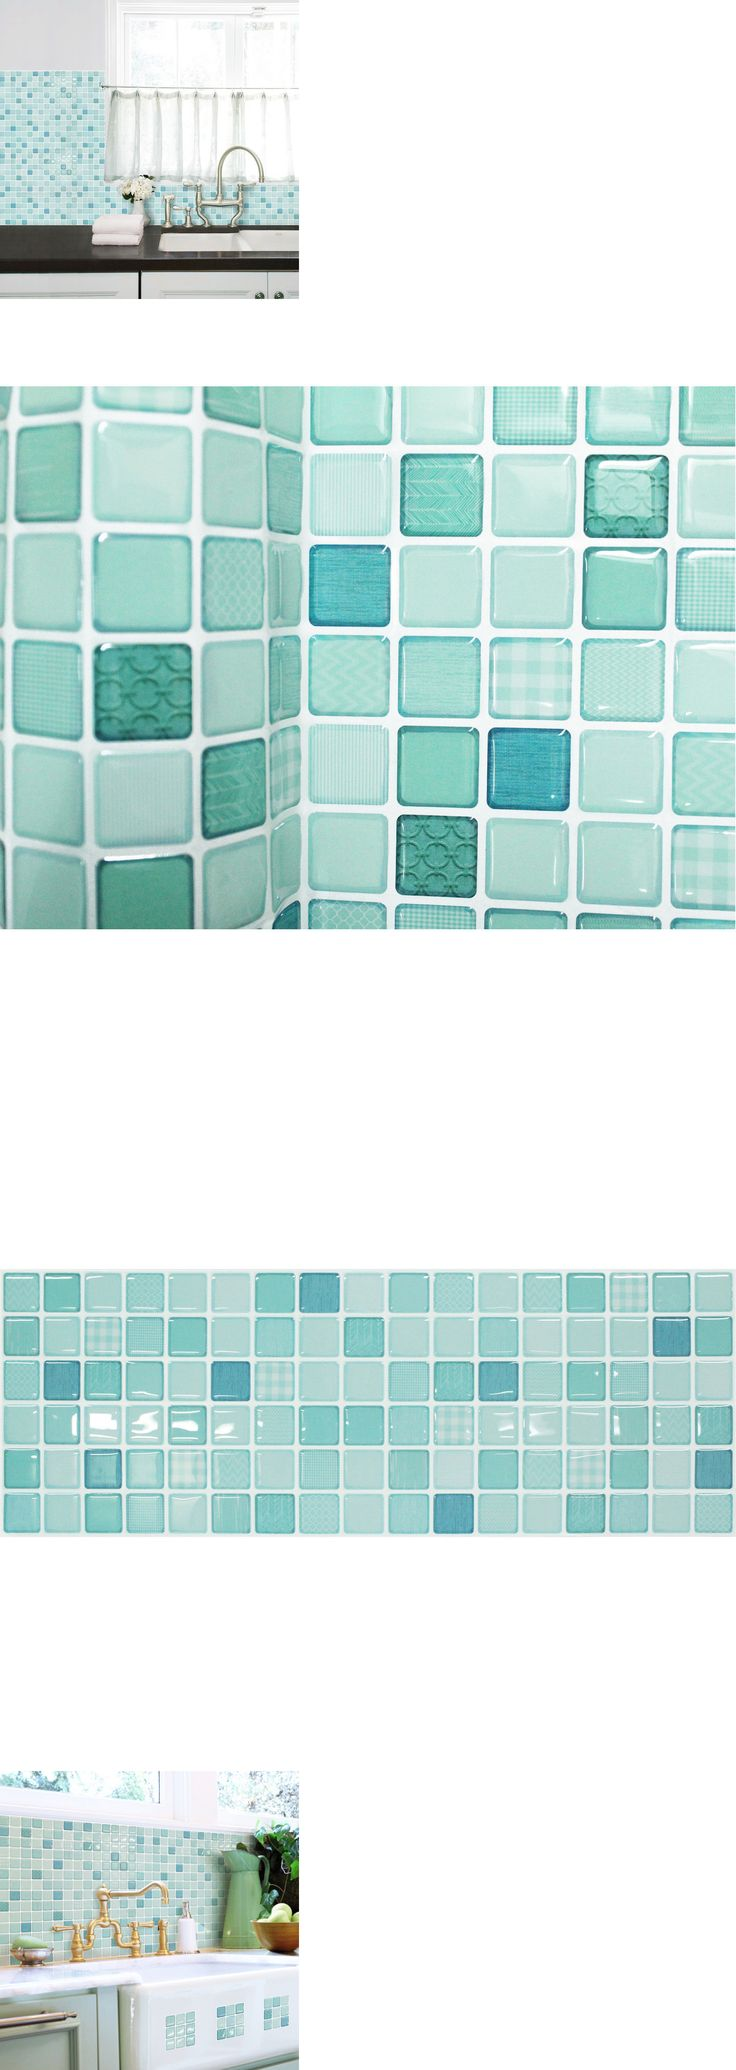 Floor and Wall Tiles 45800: Self Adhesive Wall Tiles Peel And Stick Backsplash Kitchen Wallpaper Green Blue -> BUY IT NOW ONLY: $35.9 on eBay!